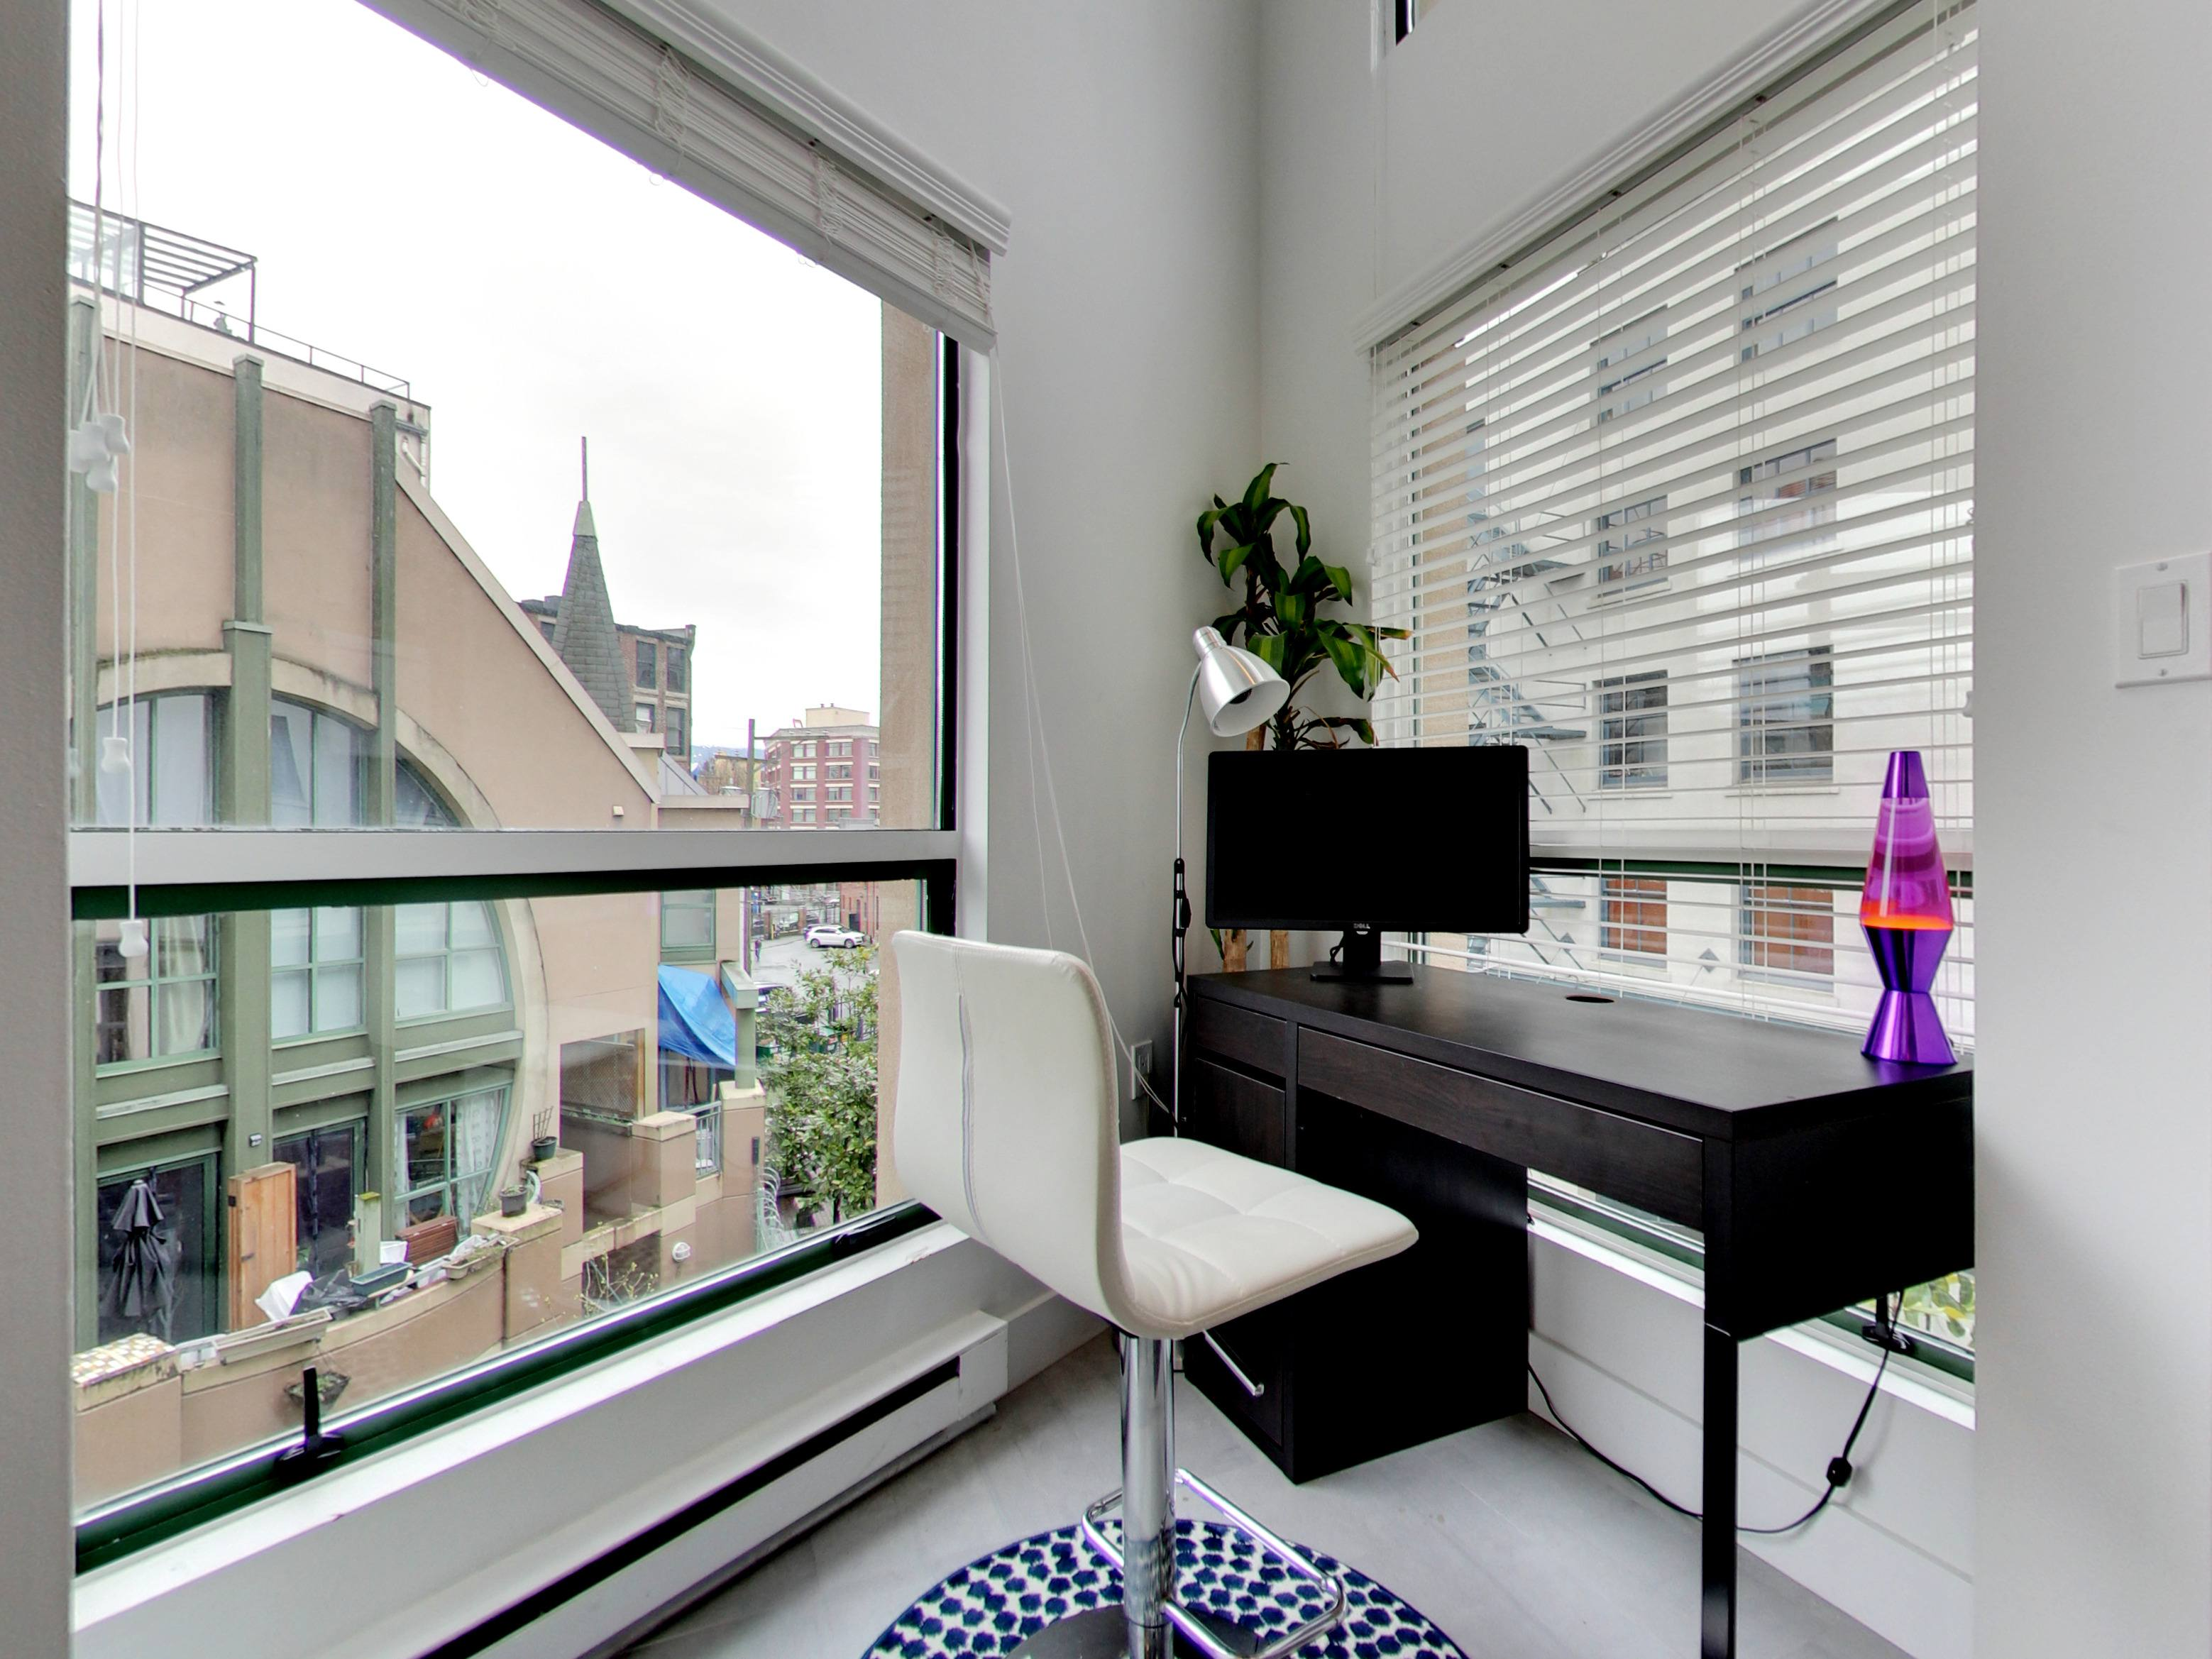 Wide windows allow for a great view (Jamie Henry)